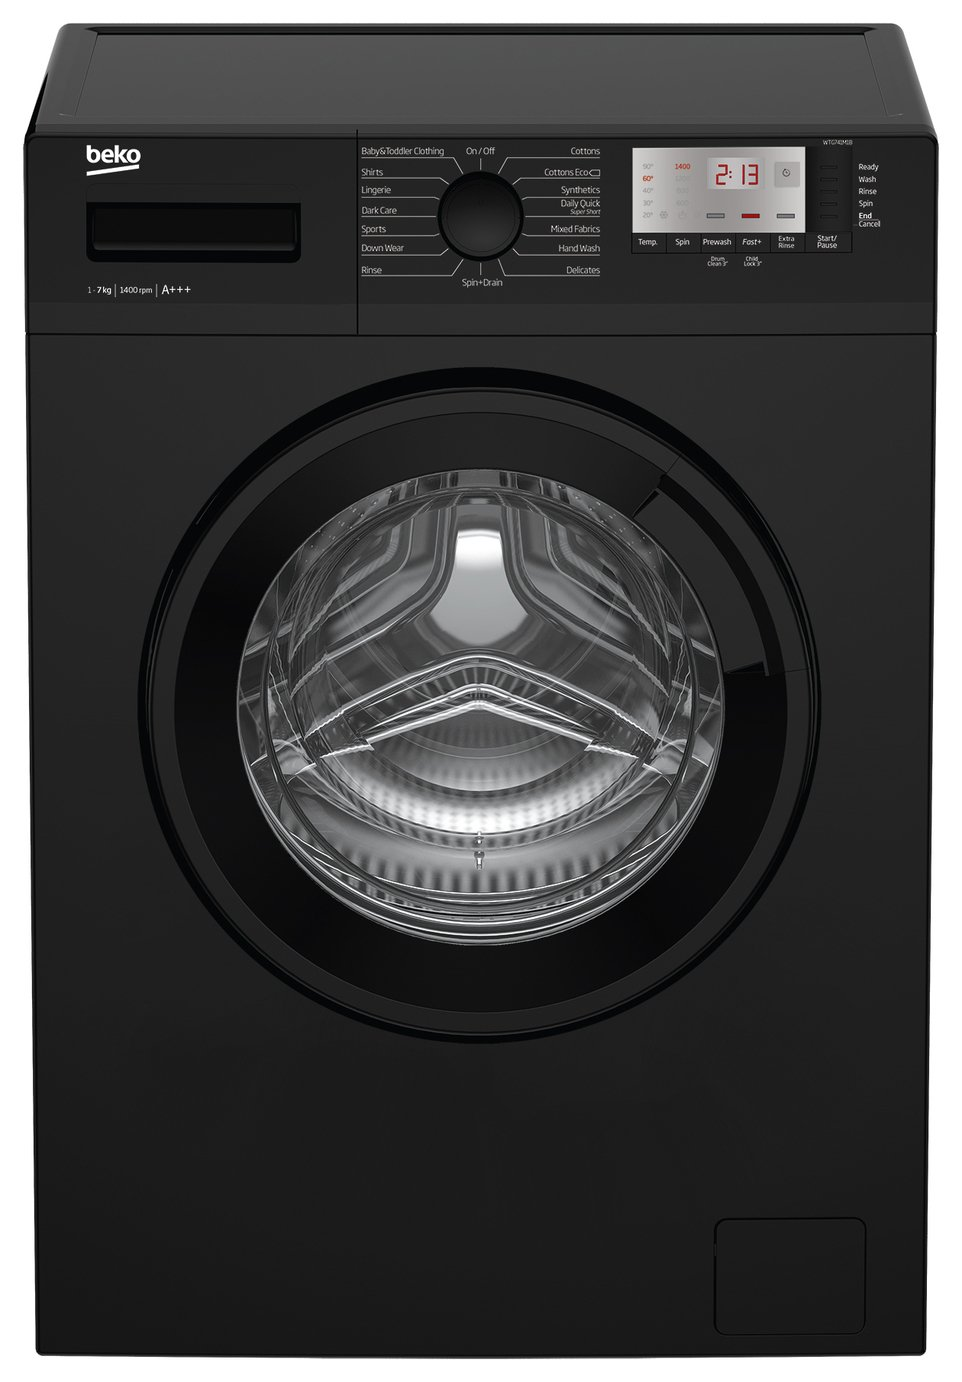 Beko WTG741M1B 7KG 1400 Spin Washing Machine Black & Installation review